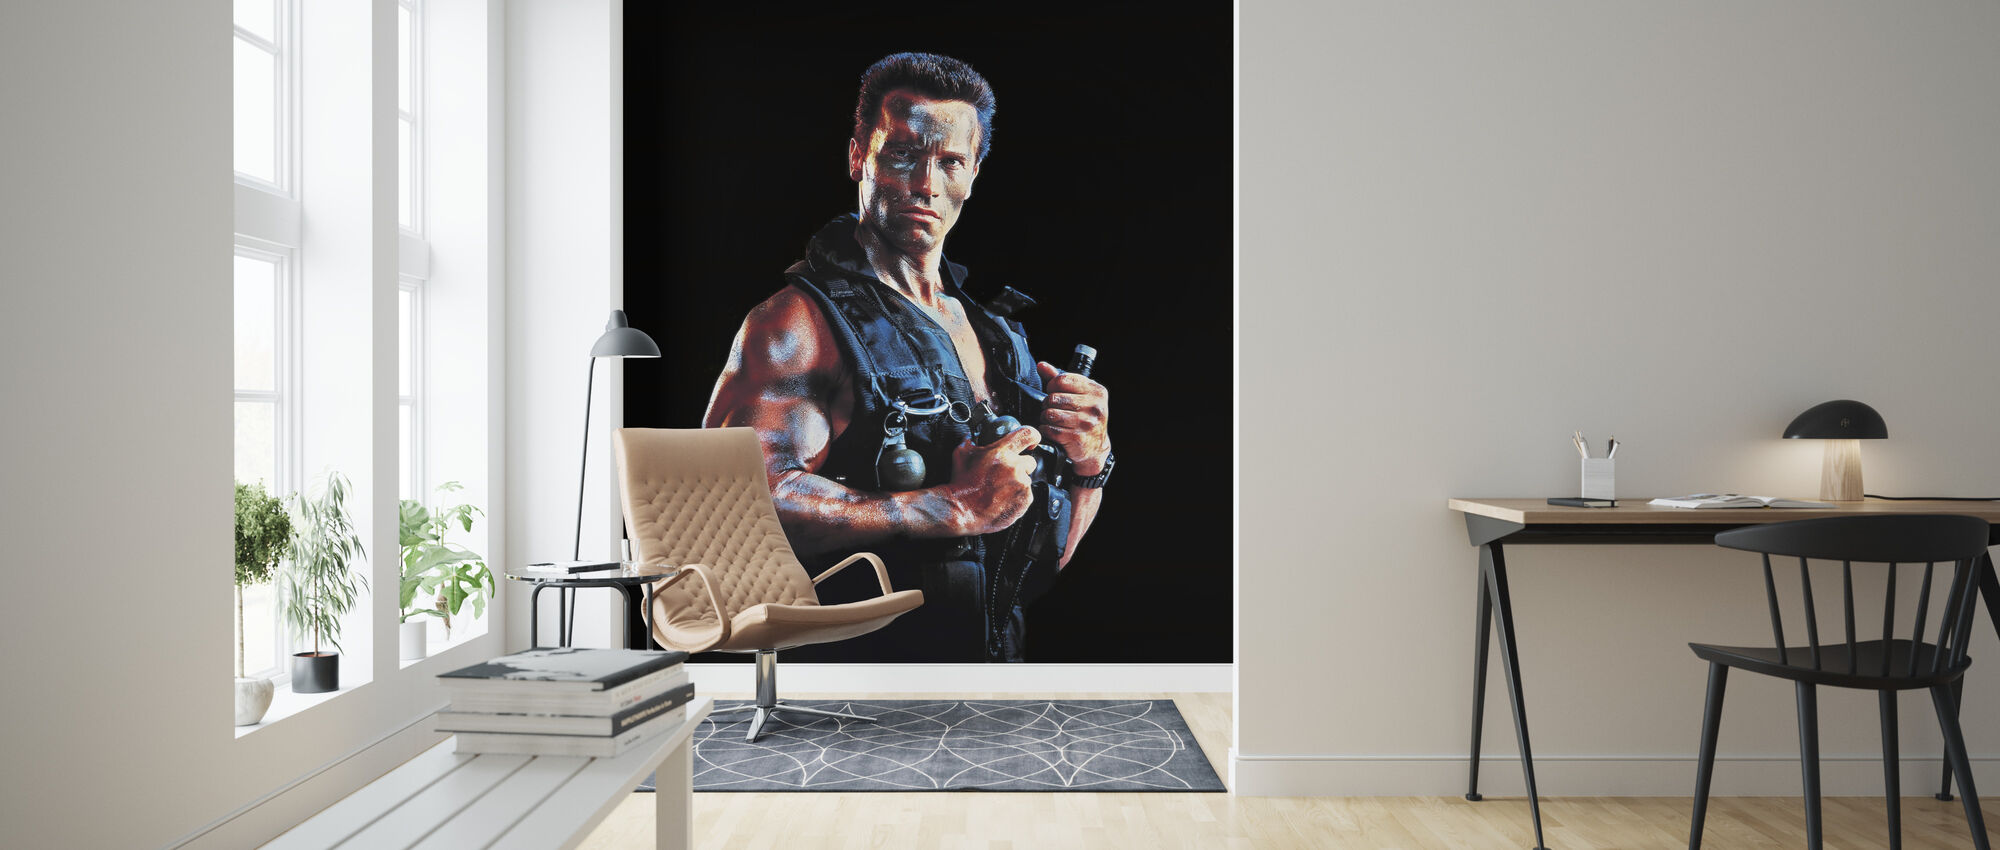 Arnold Schwarzenegger in Commando - Wallpaper - Living Room